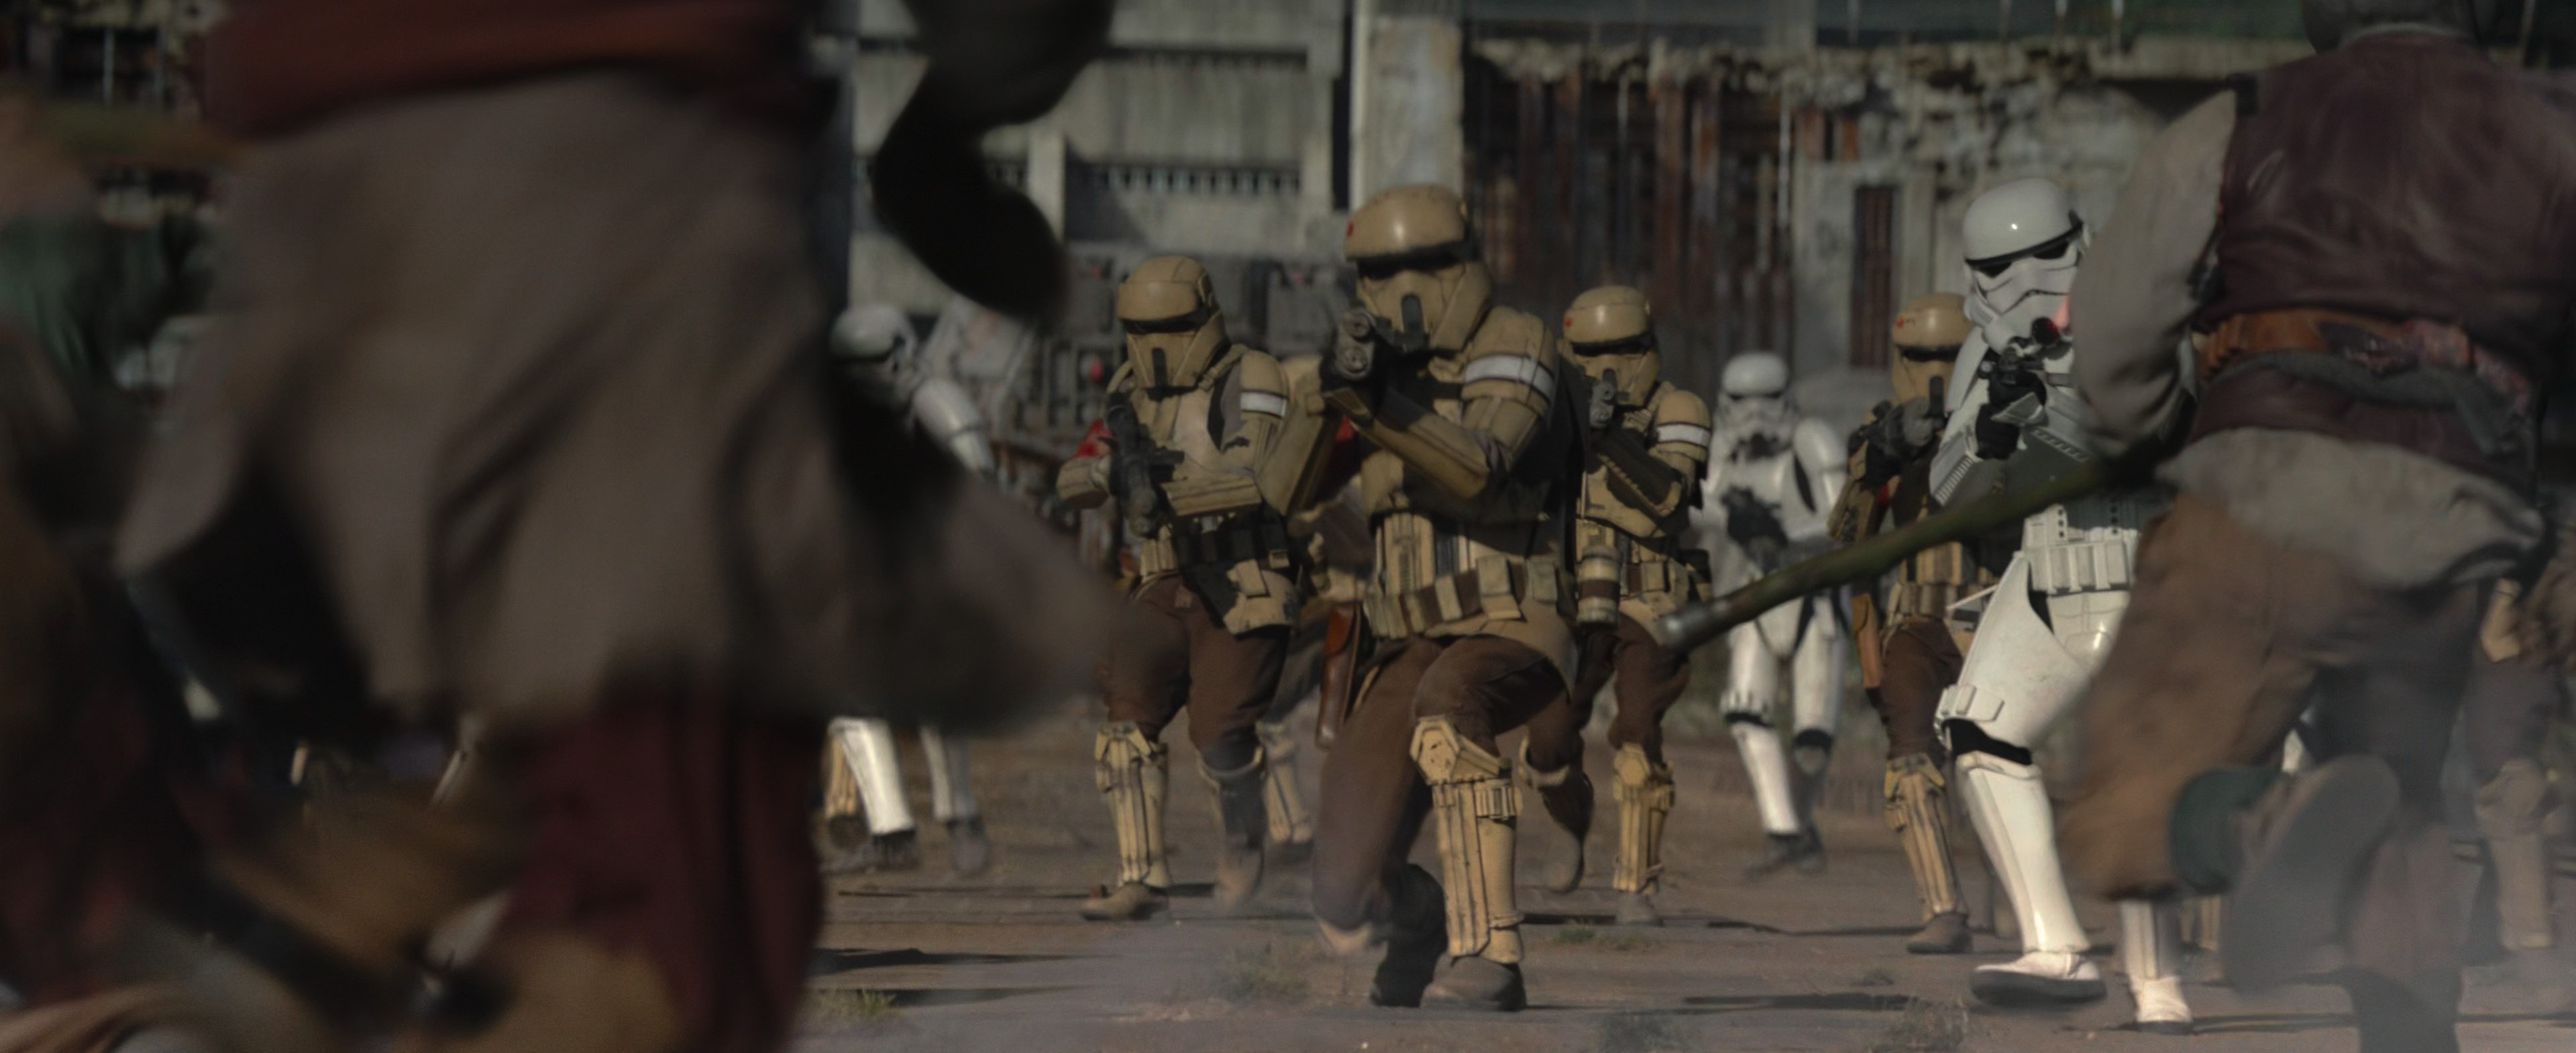 star wars series the mandalorian chapter 15 the believer stormtroopers shoretroopers